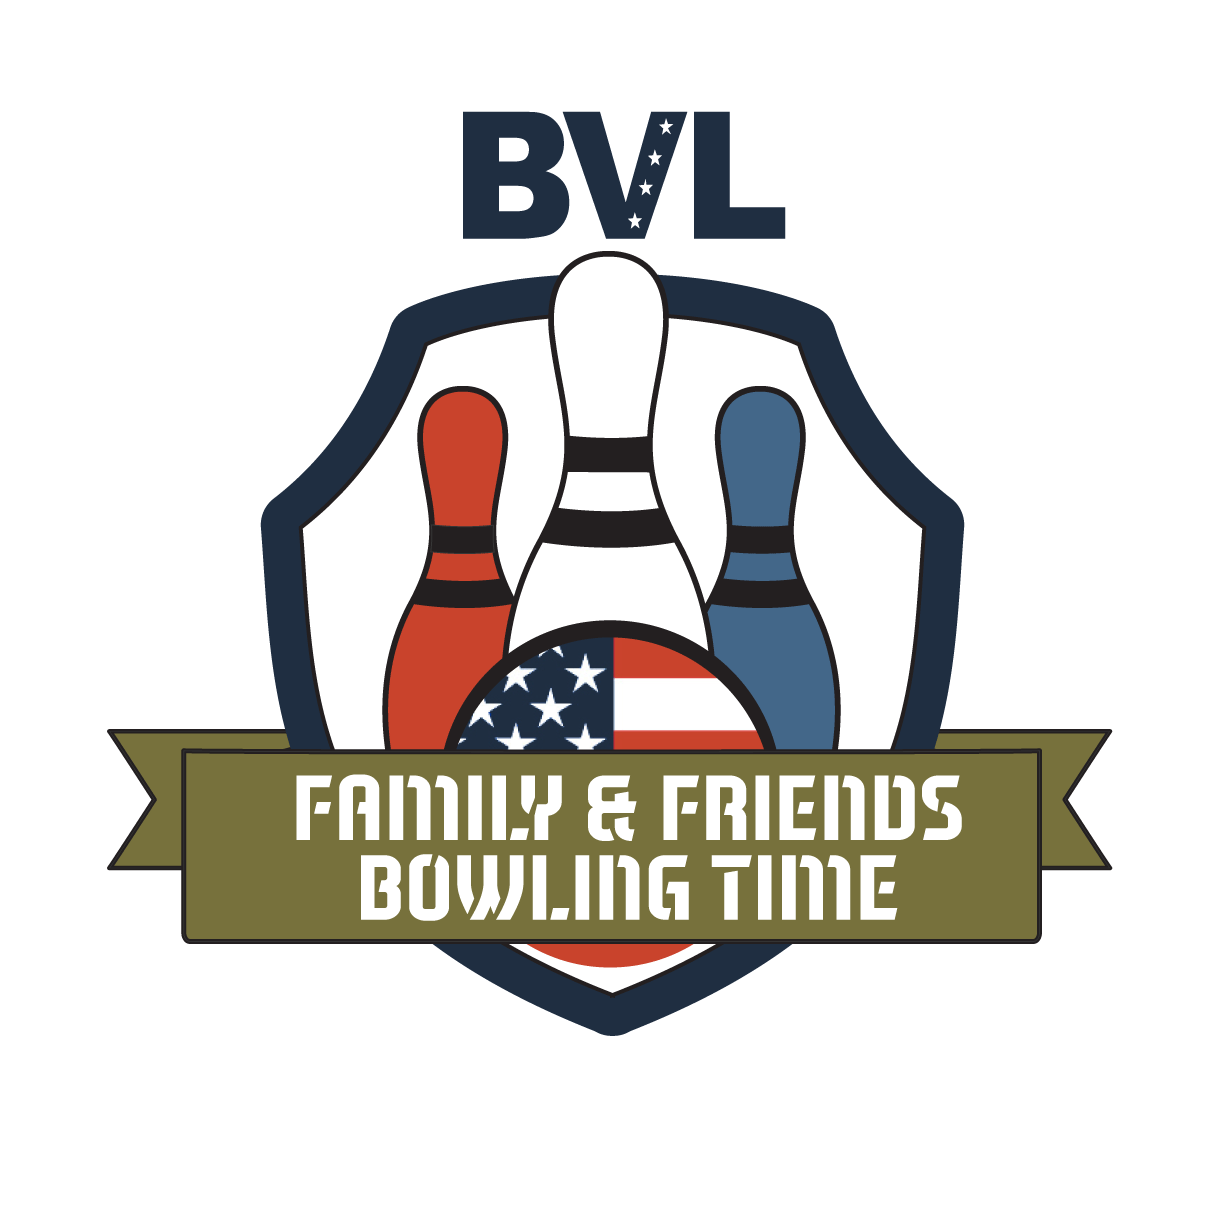 bowling-logo_Family-&-Friends